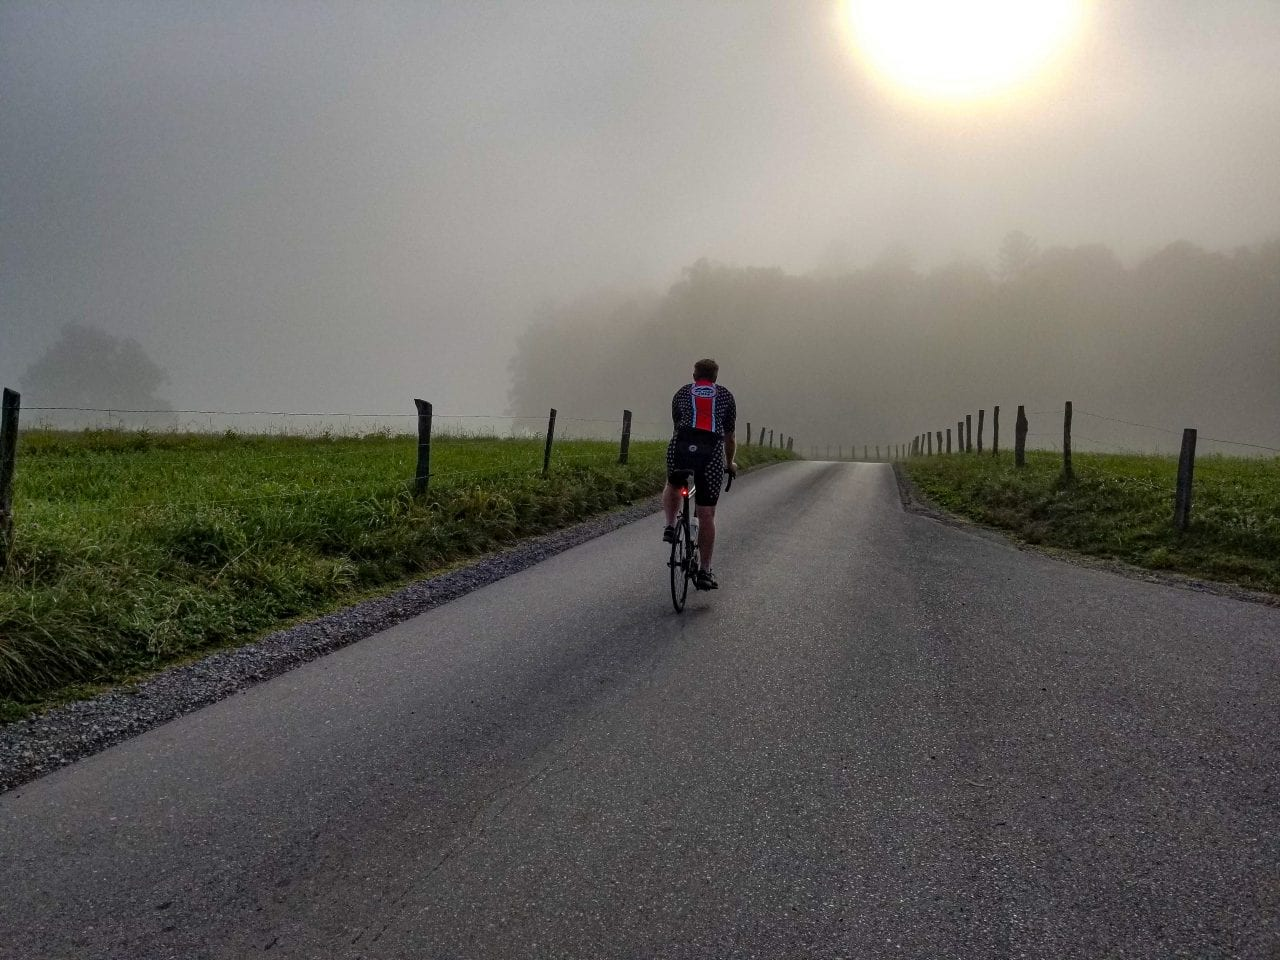 Biking Cades Cove in the early morning mists